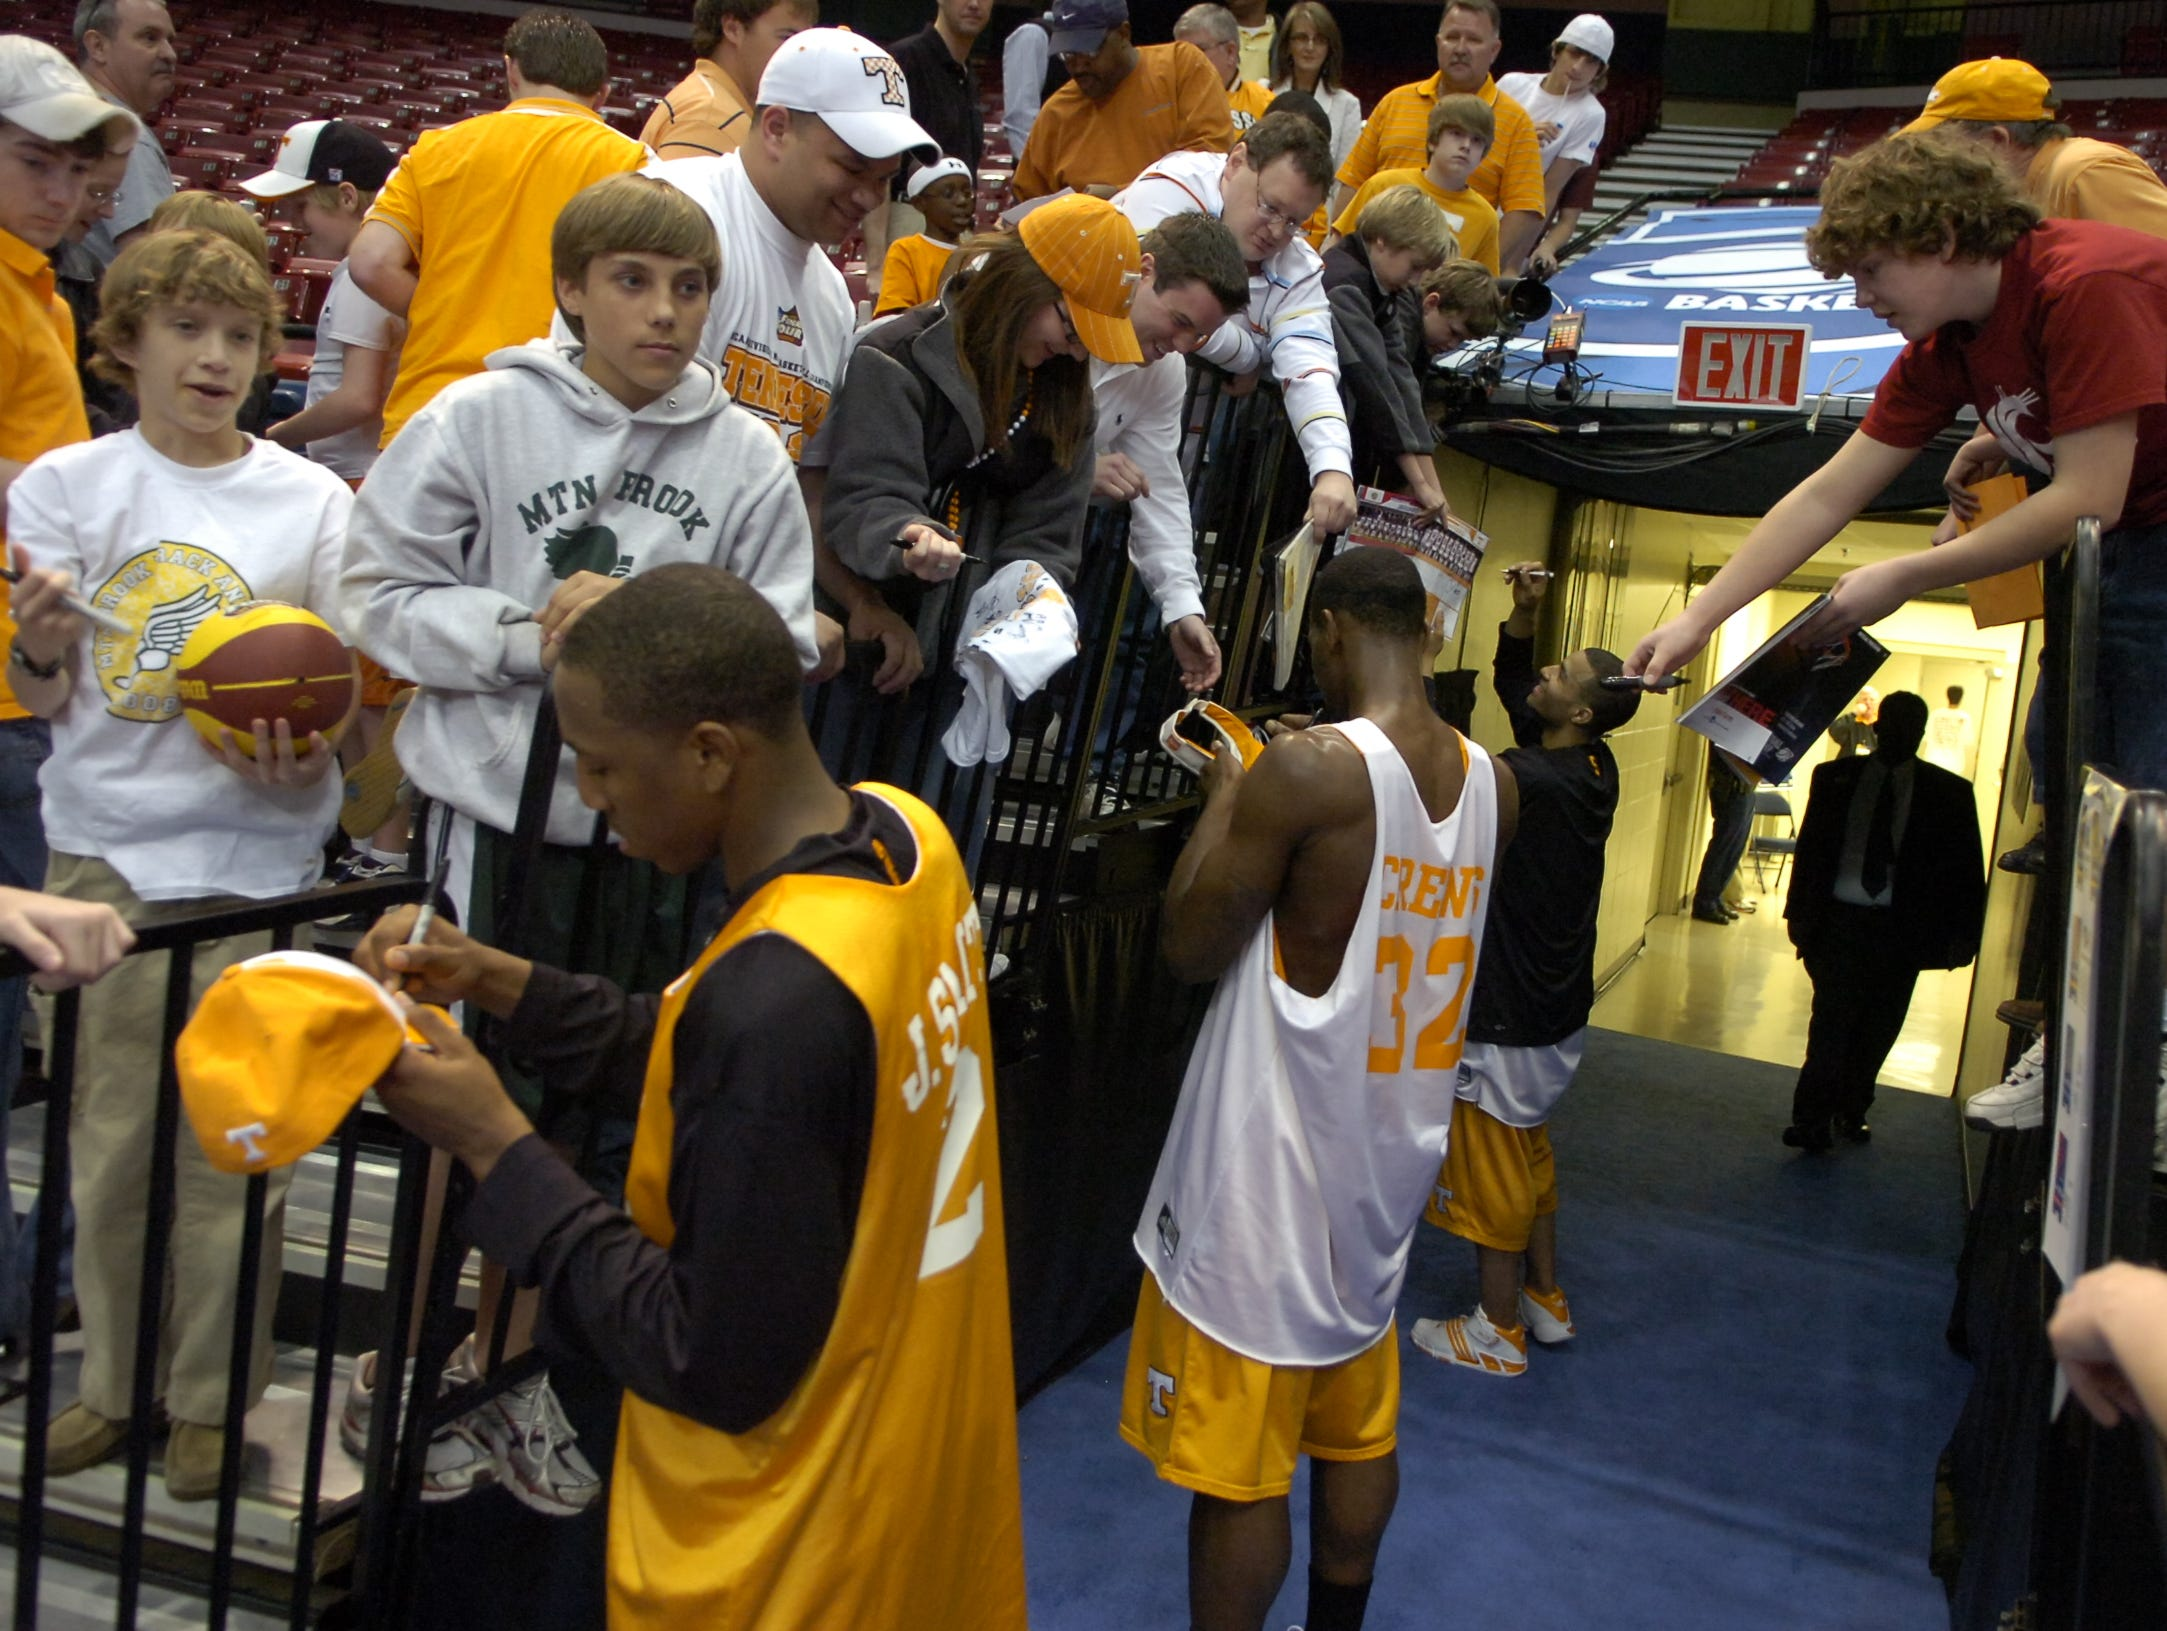 Tennessee's JaJuan Smith, Duke Crews and Chris Lofton sign autographs for fans during a day of practice and press conferences to start the first round of the 2008 NCAA Tournament in Birmingham, Alabama on Thursday. Tennessee will face American University at 12:15EST on Friday.